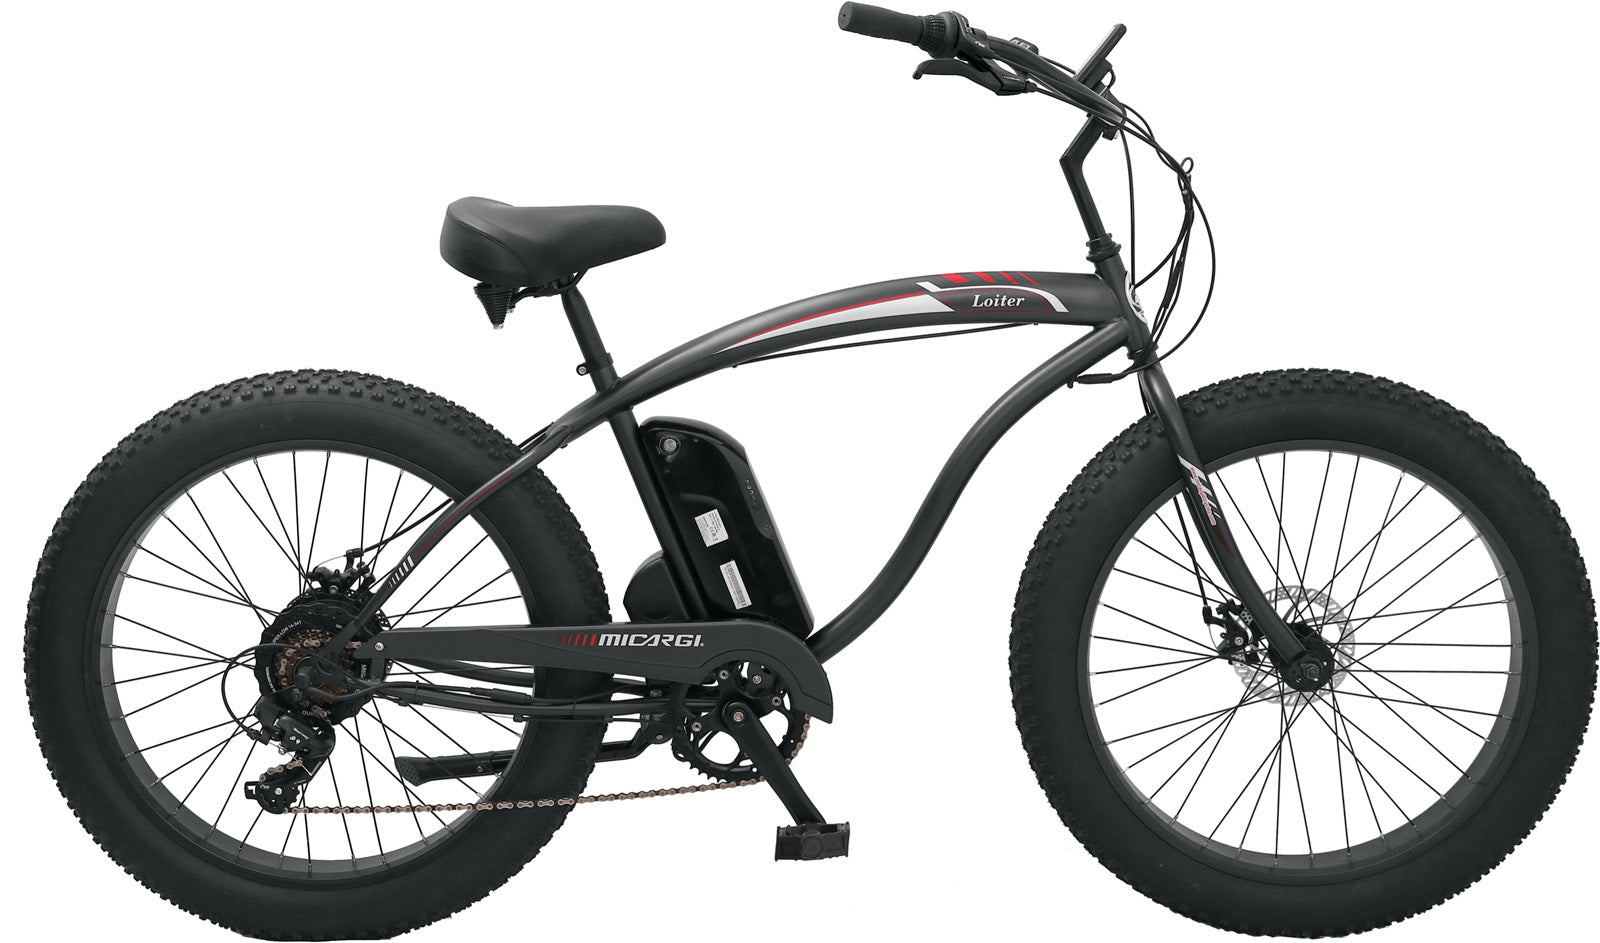 Micargi Loiter 48V 500W Disk Brake Electric E-Bike Bicycle - Electric Bike & Skate